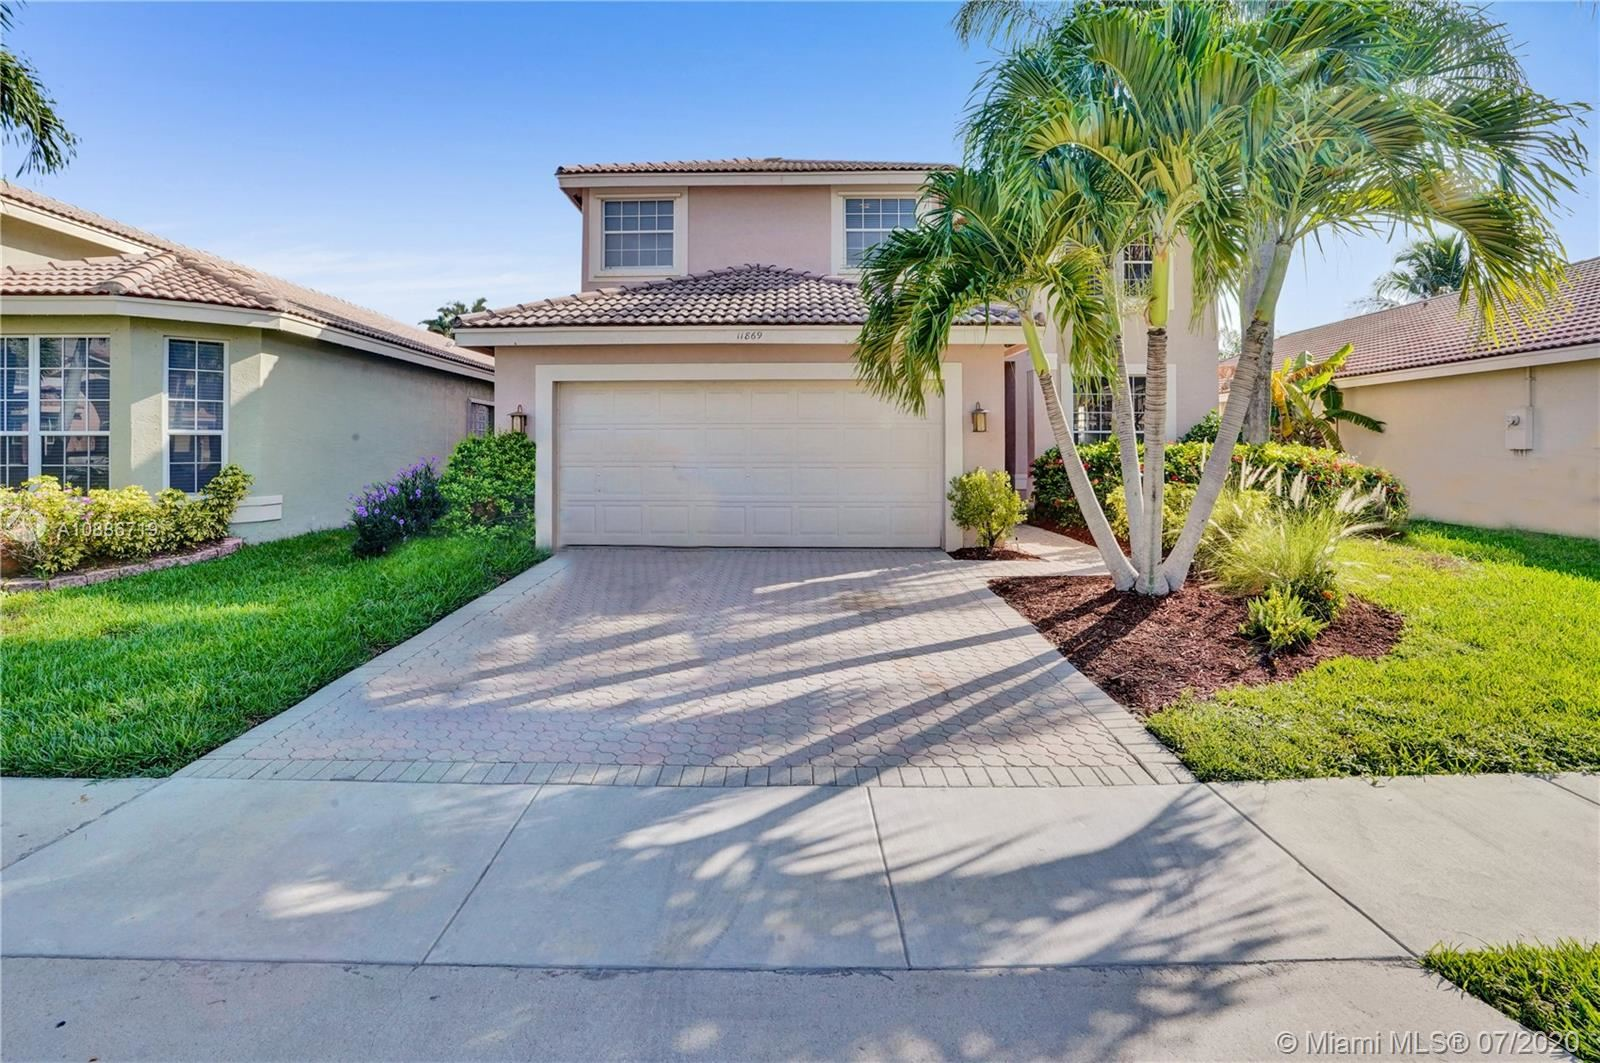 11869 NW 53rd Ct, Coral Springs, FL 33076 - #: A10886719